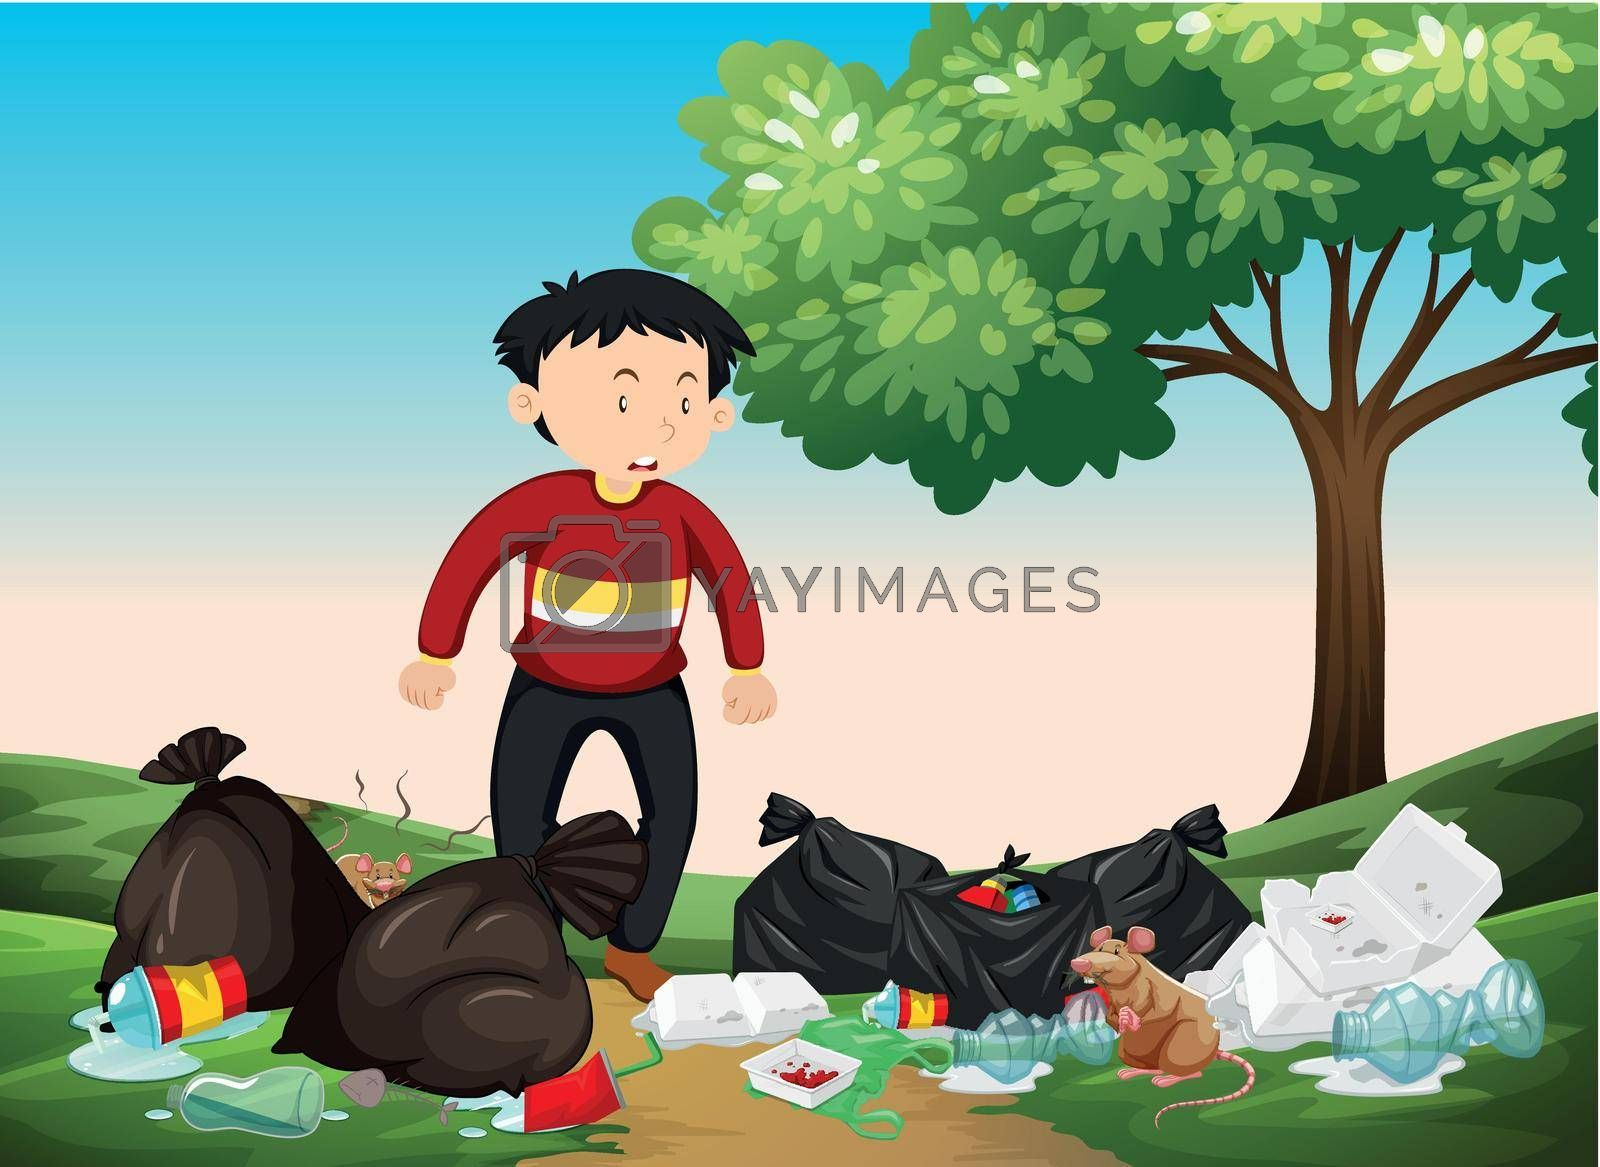 Man looking at pile of trash in the park illustration